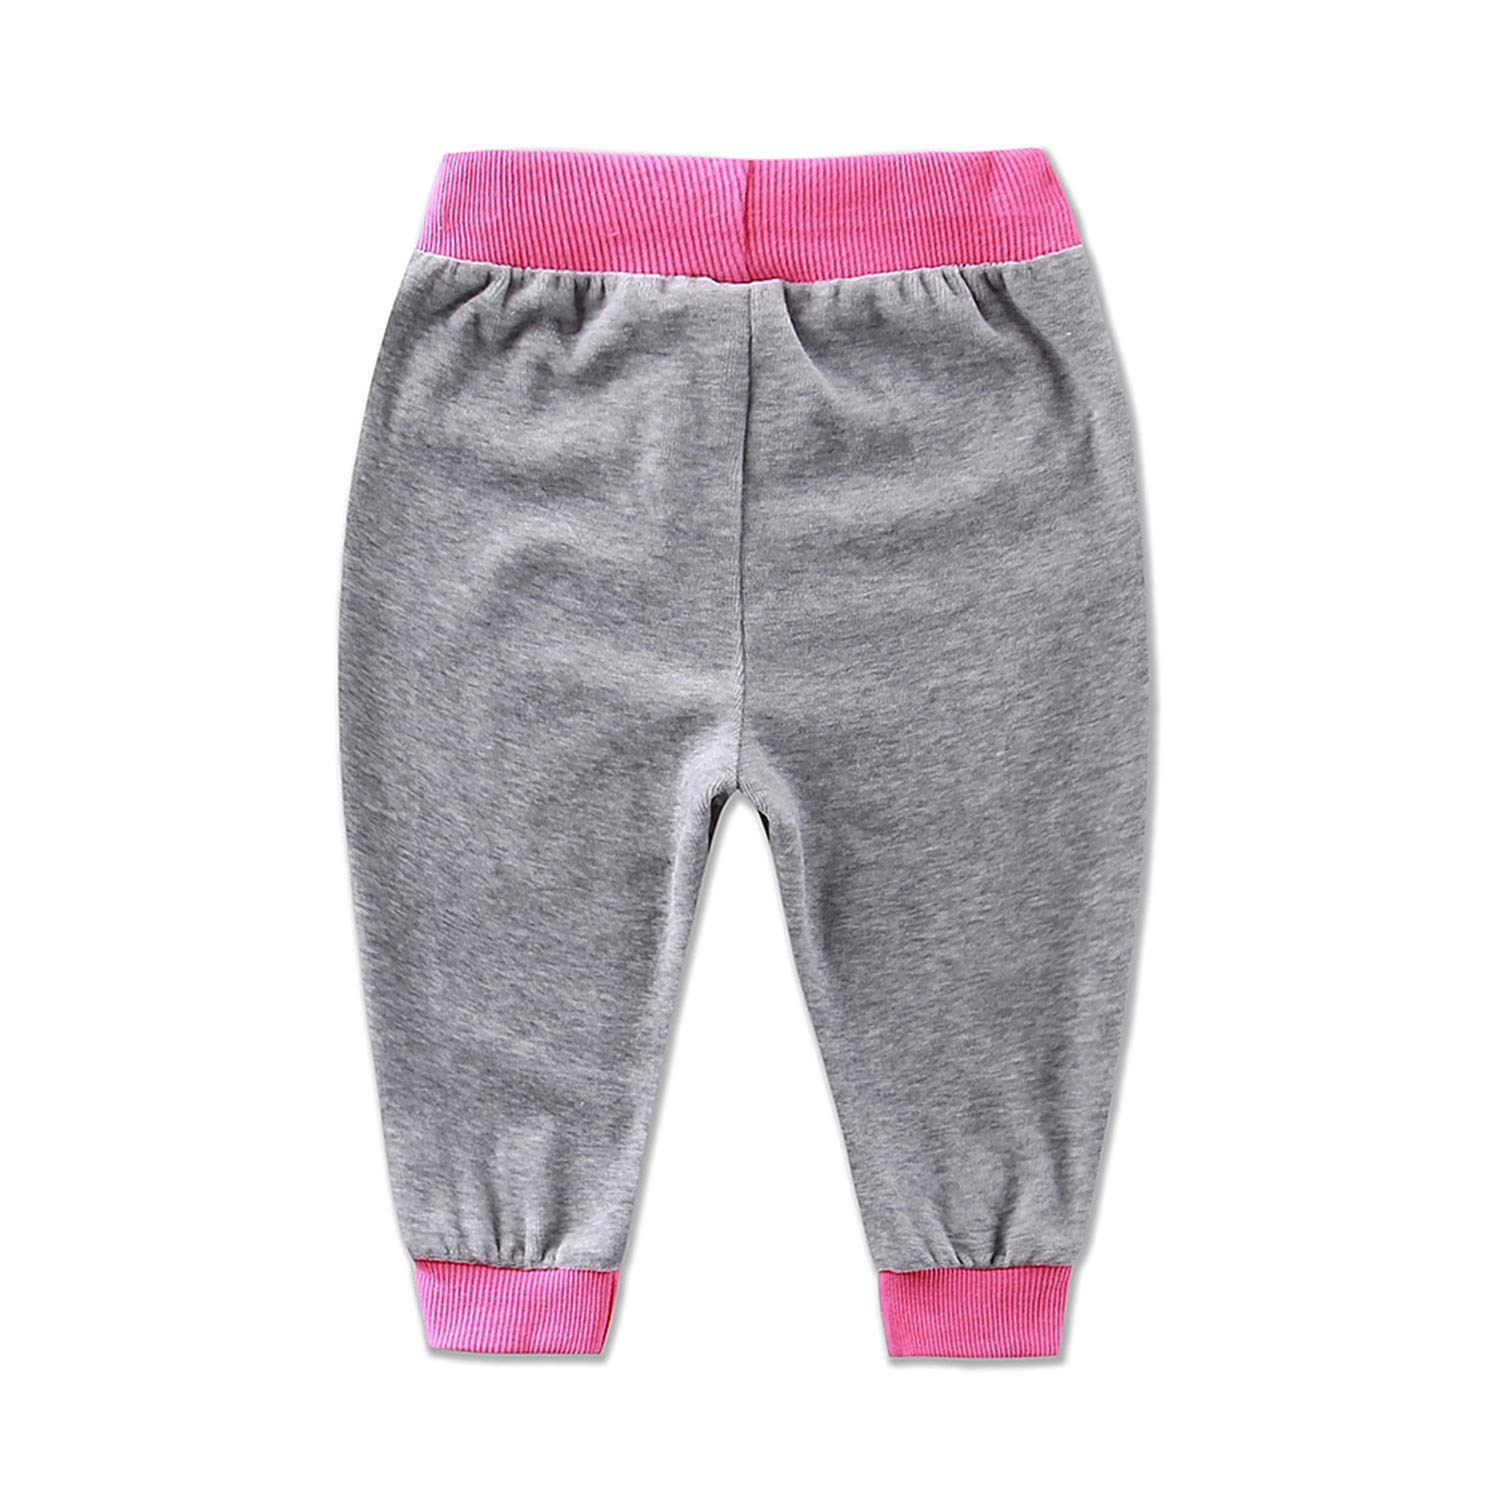 MRxcff Baby Long Pants Velour Trousers Spring Boys and Girls Clothes Elastic Waist Clothing